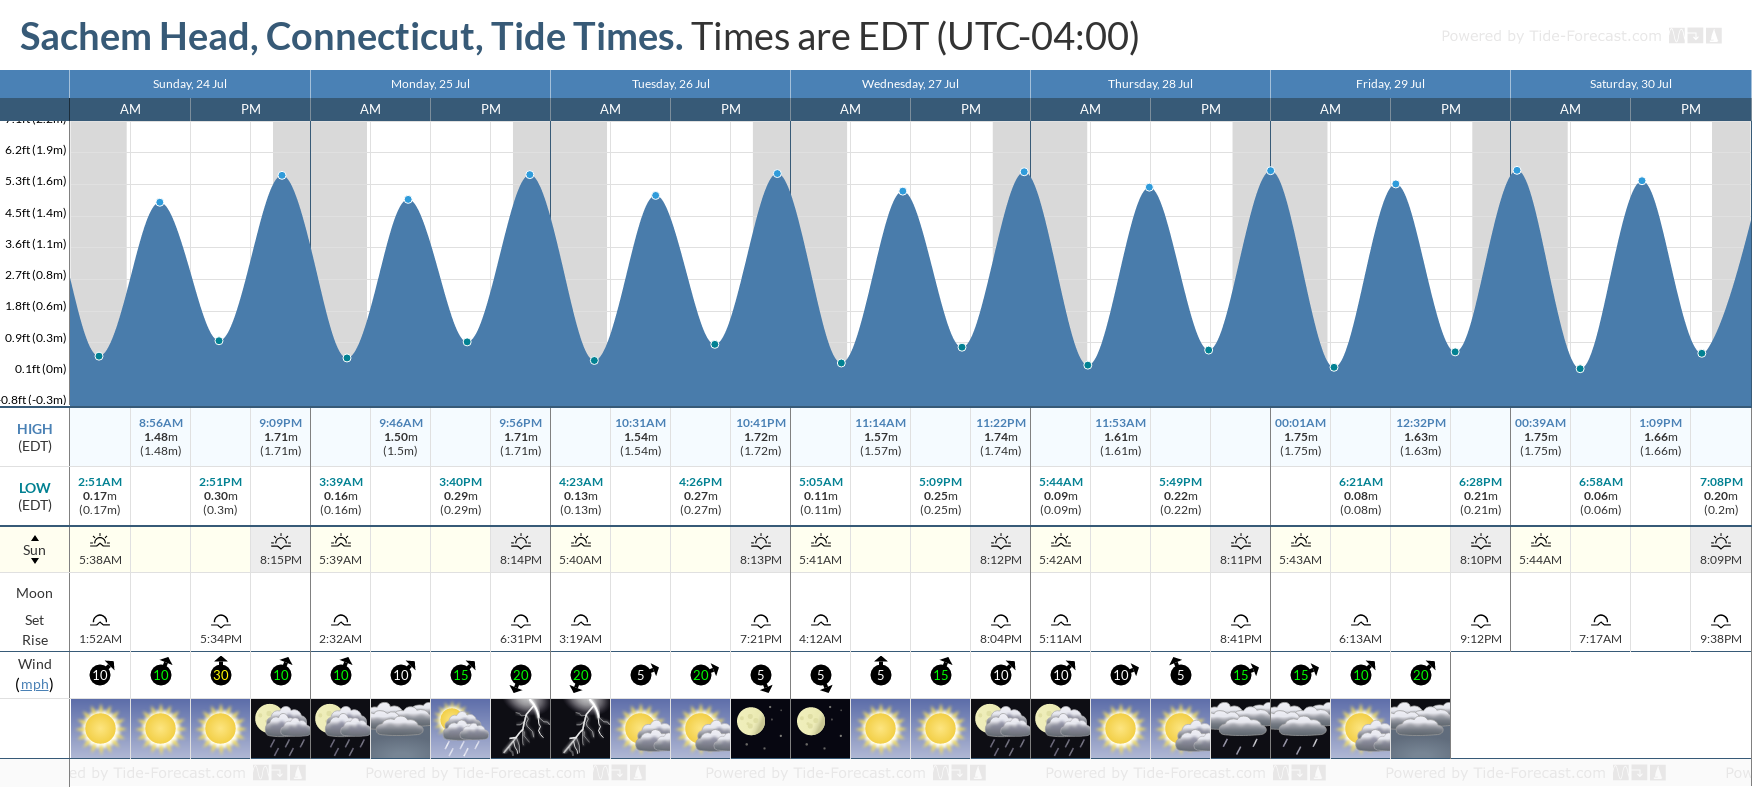 Sachem Head, Connecticut Tide Chart including high and low tide tide times for the next 7 days